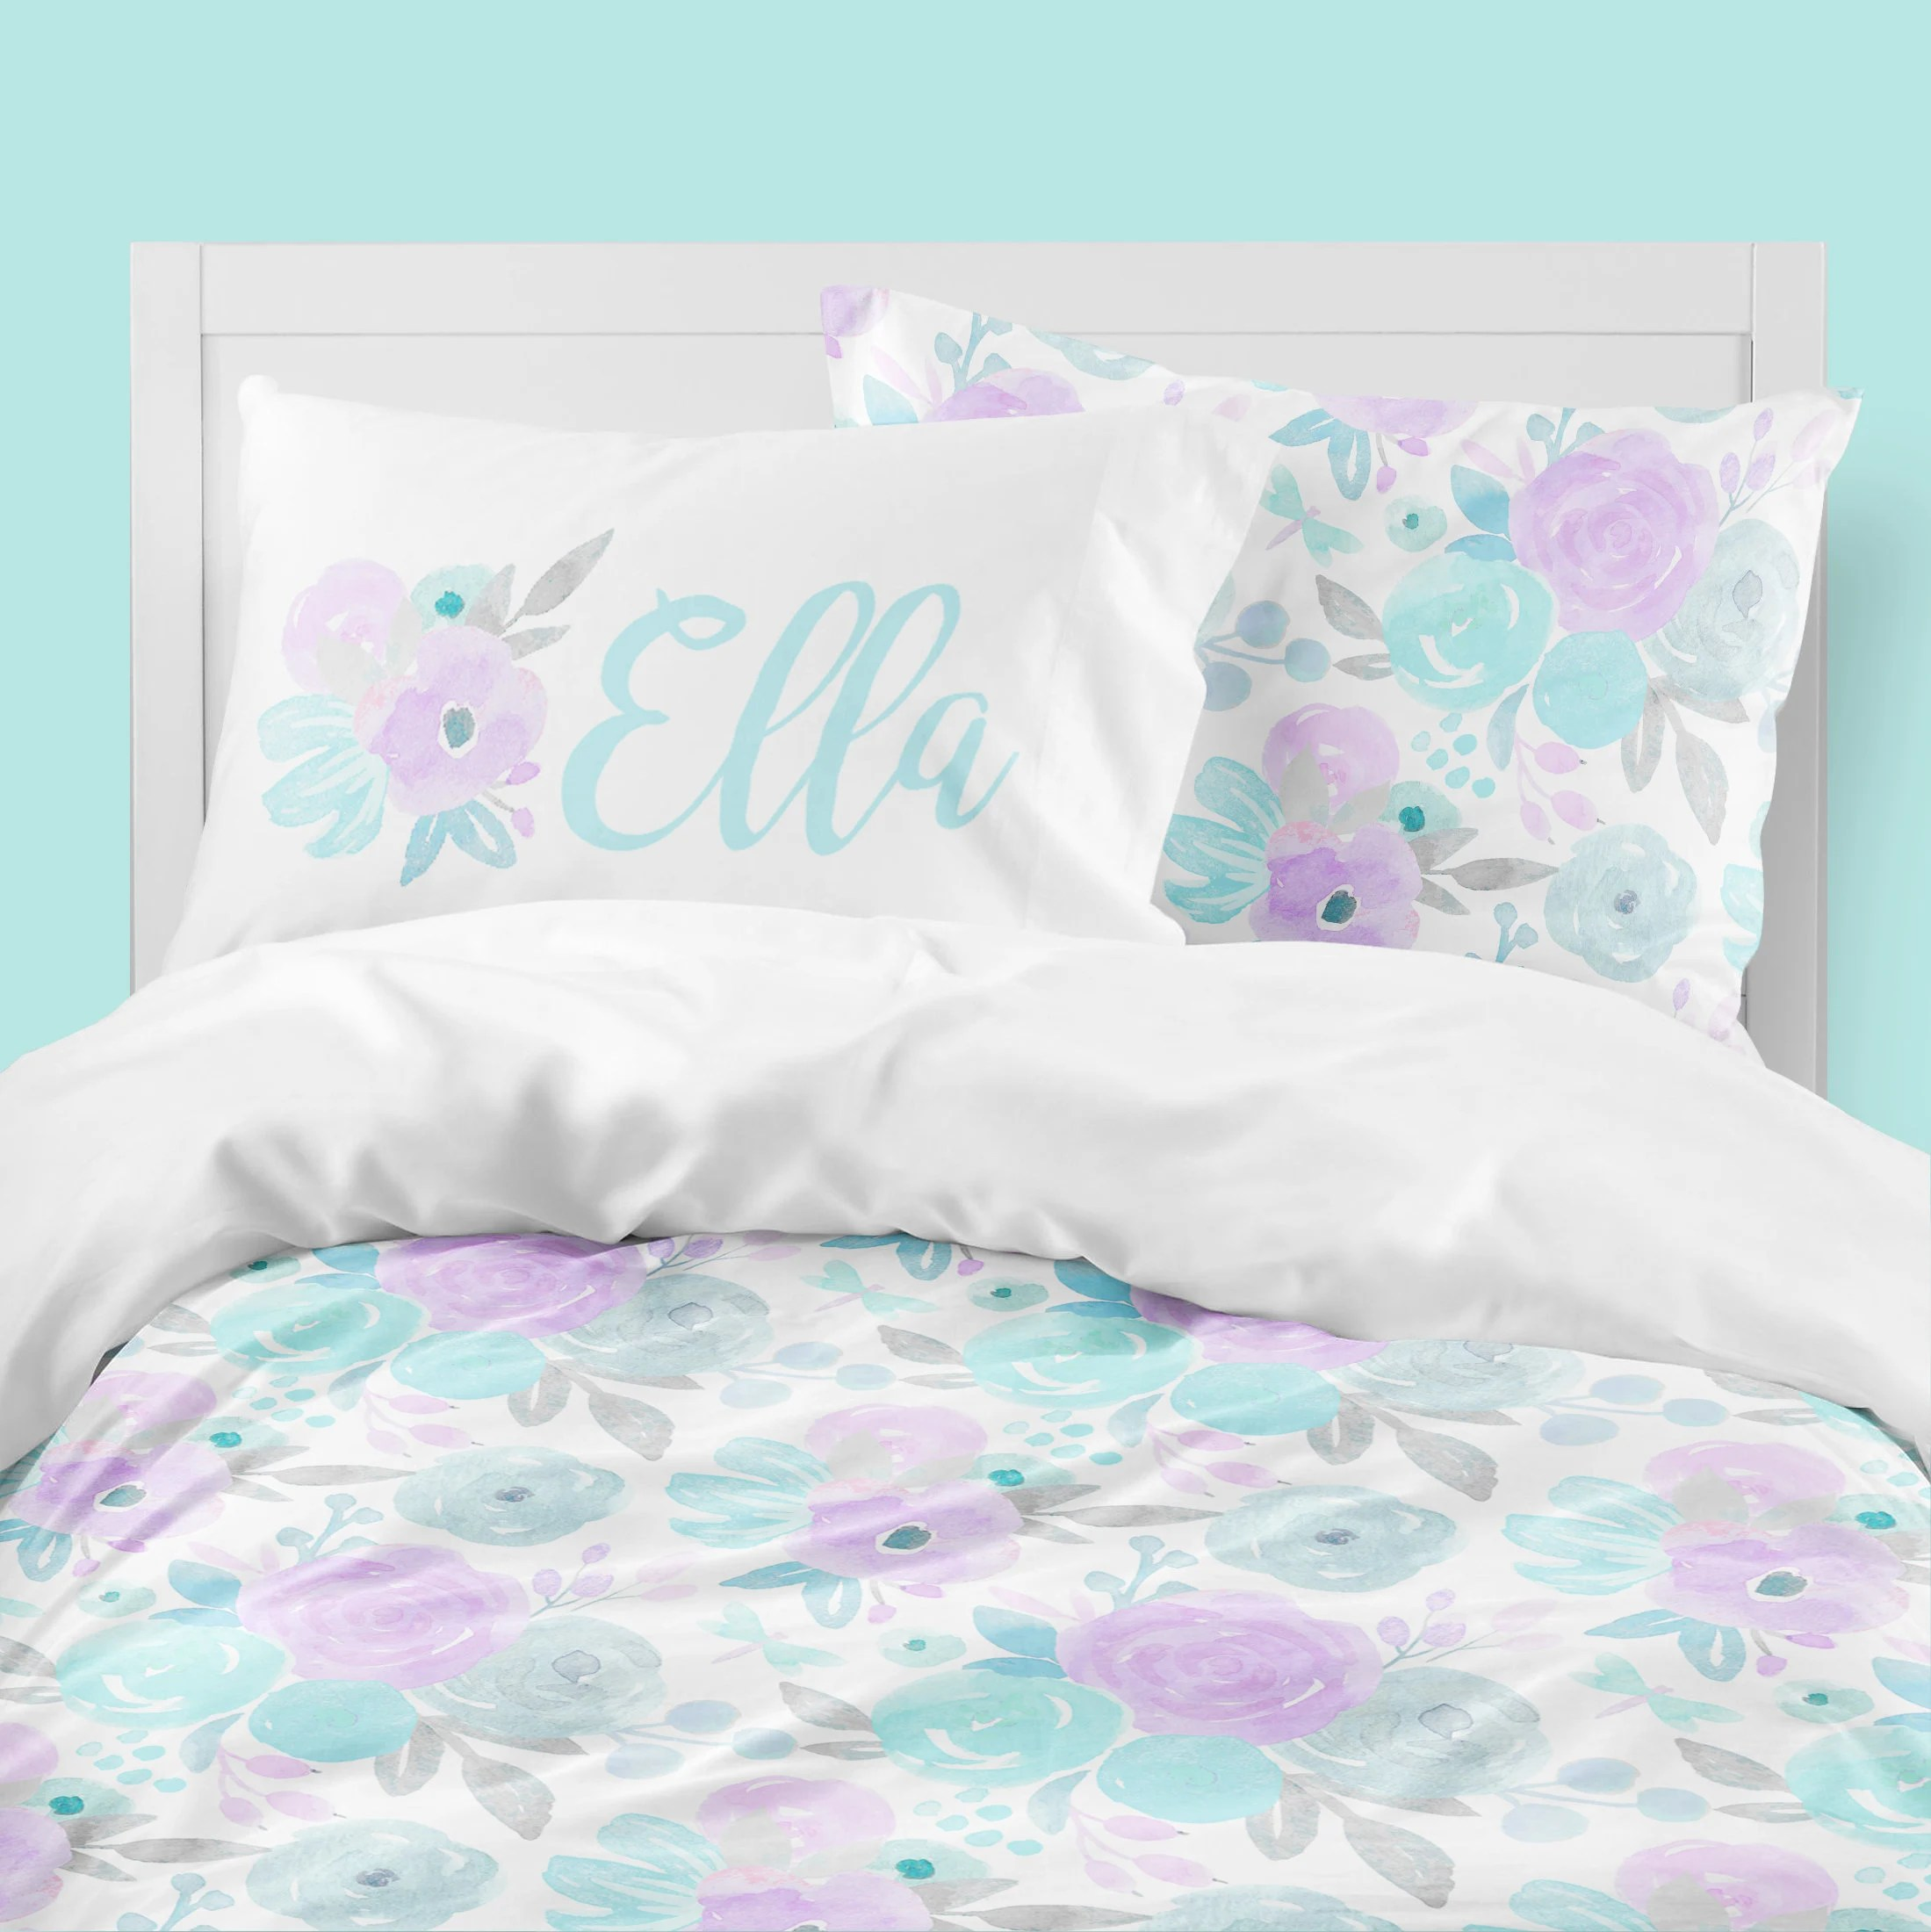 Duvet Covers And Comforters Floral Bedding Set Duvet Cover Comforter Girls Room Pillowcase Set Purple Aqua Todder Bedding Twin Bedding King Queen Watercolor